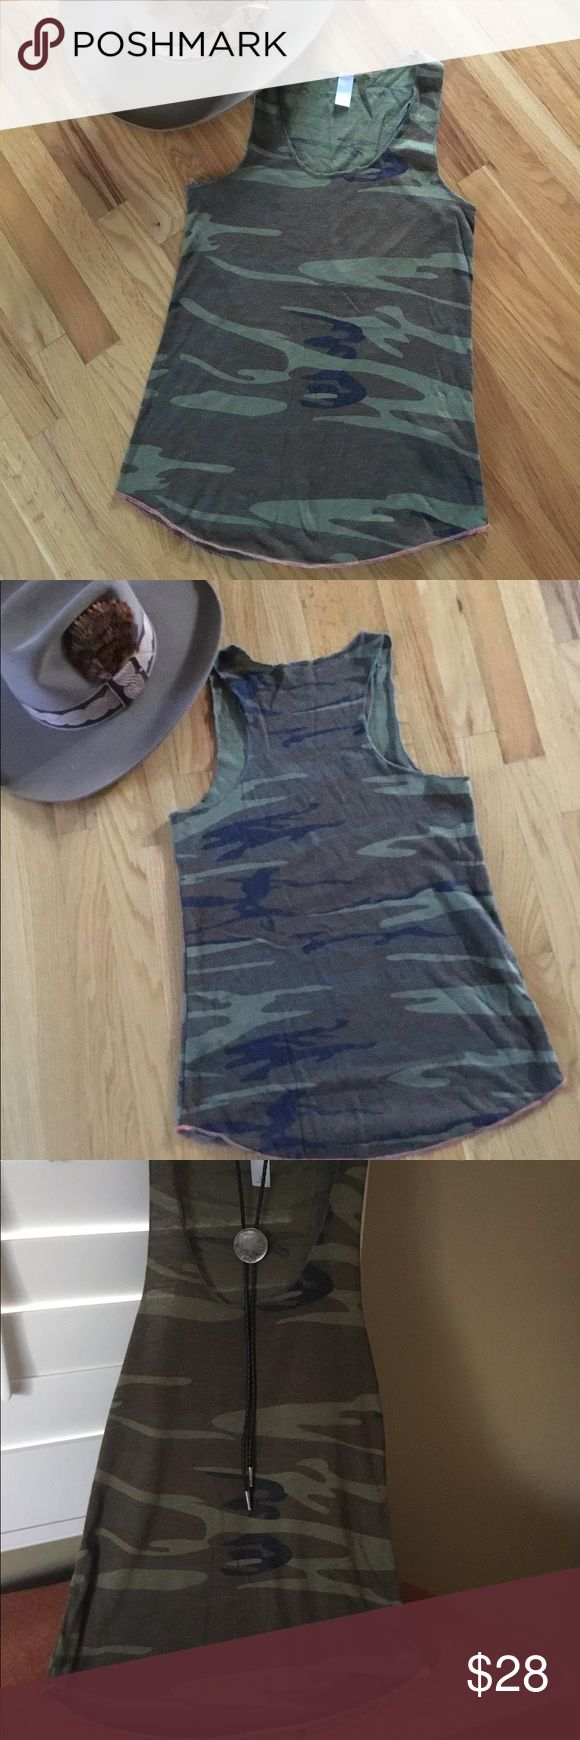 Camo Tank Top Very cool camo tank. Wear your black, brown, tan, or white bralette with this adorable tank and you will be turning heads! 50% Poly, 38% Cotton, 12% Rayon makes this an ultra soft tank! New with no tags. Salmon colored trim on bottom. Tops Tank Tops